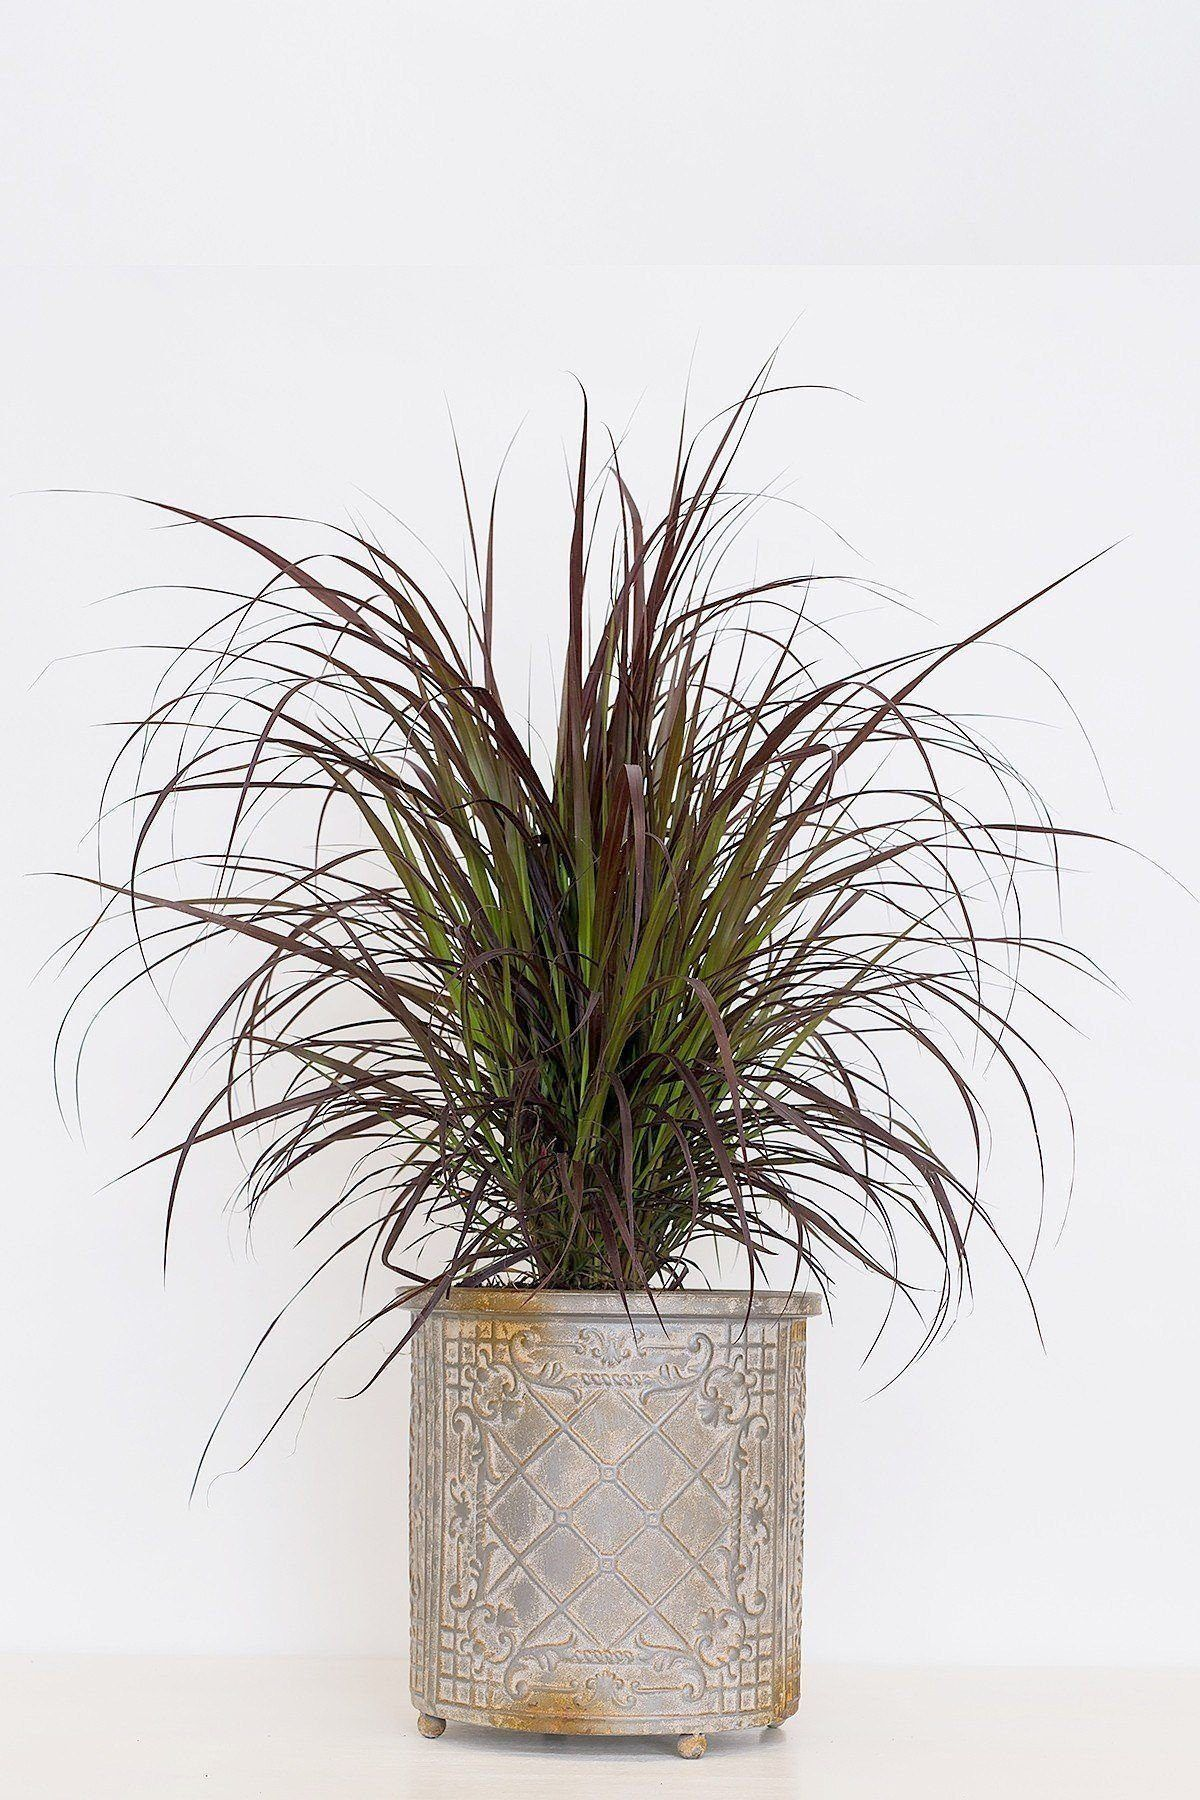 Buy Purple Fountain Grass (State Restrictions Apply) at